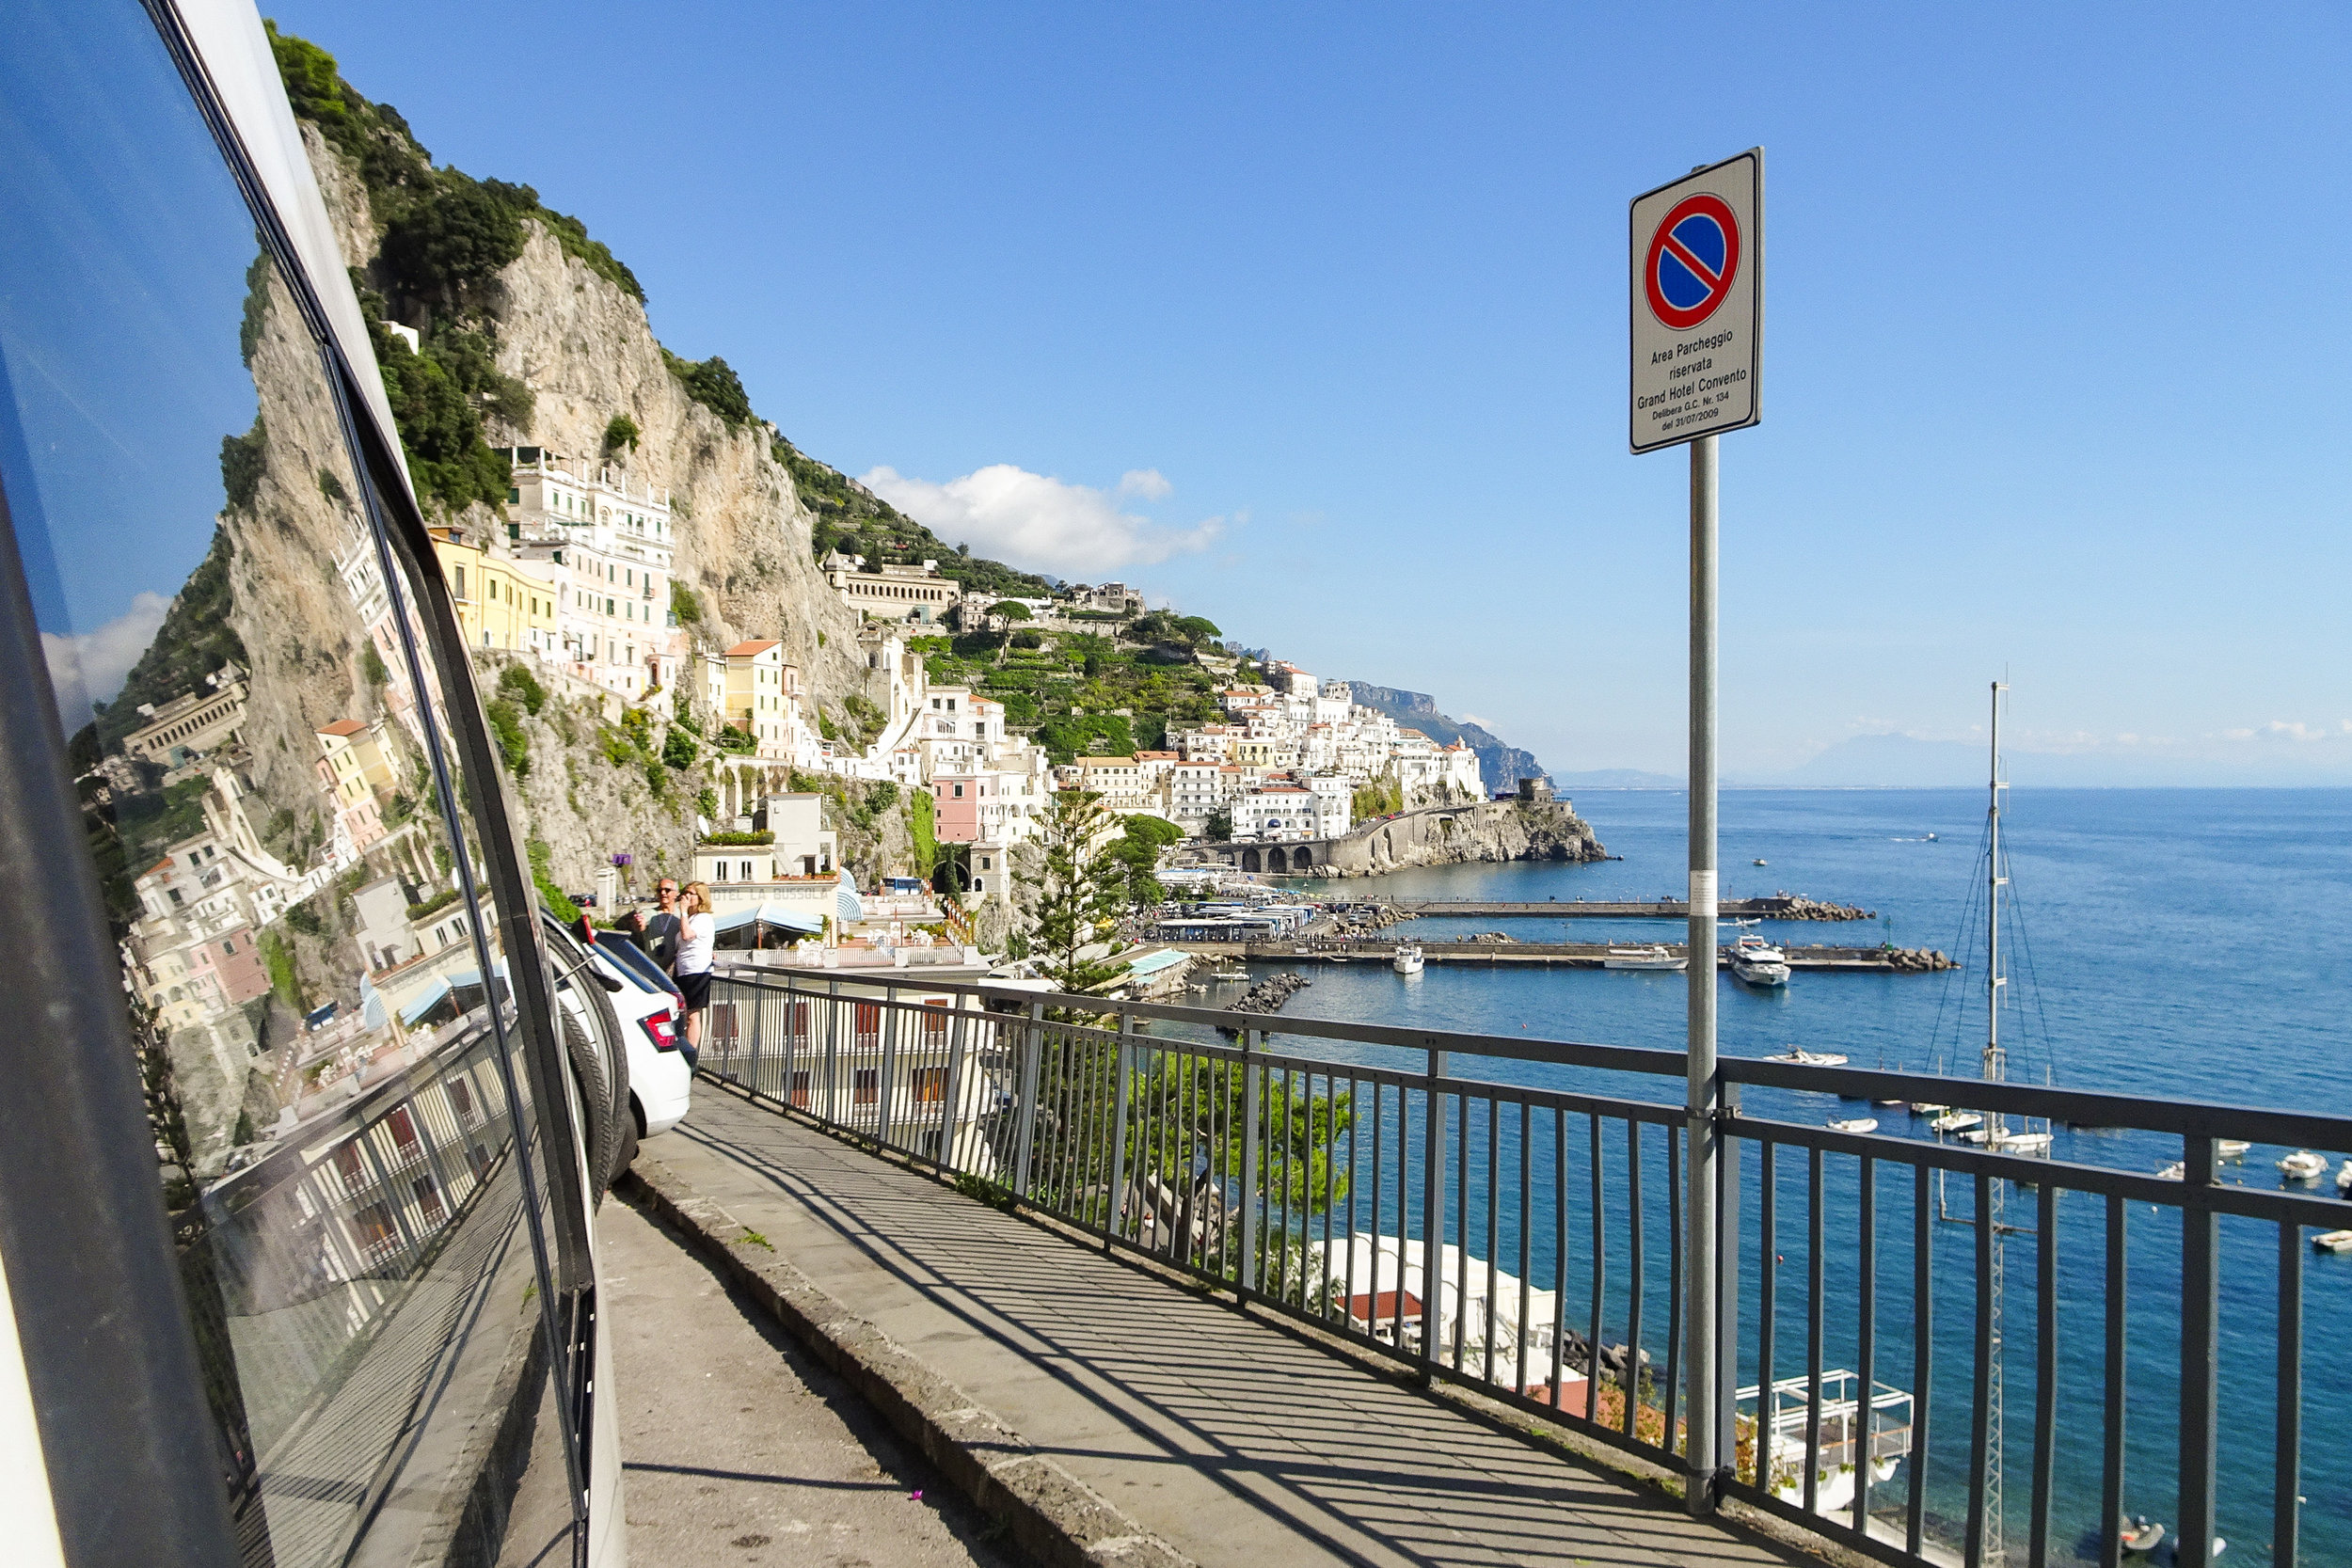 2.)Amalfi Coast - While the Amalfi Coast is gorgeous, vans are considered unwelcome and security will tell you to move on. Dense traffic takes away from the picturesque experience. Do yourself a favour and visit this beautiful region by train. That way you can enjoy everything it has to offer,without the stress.